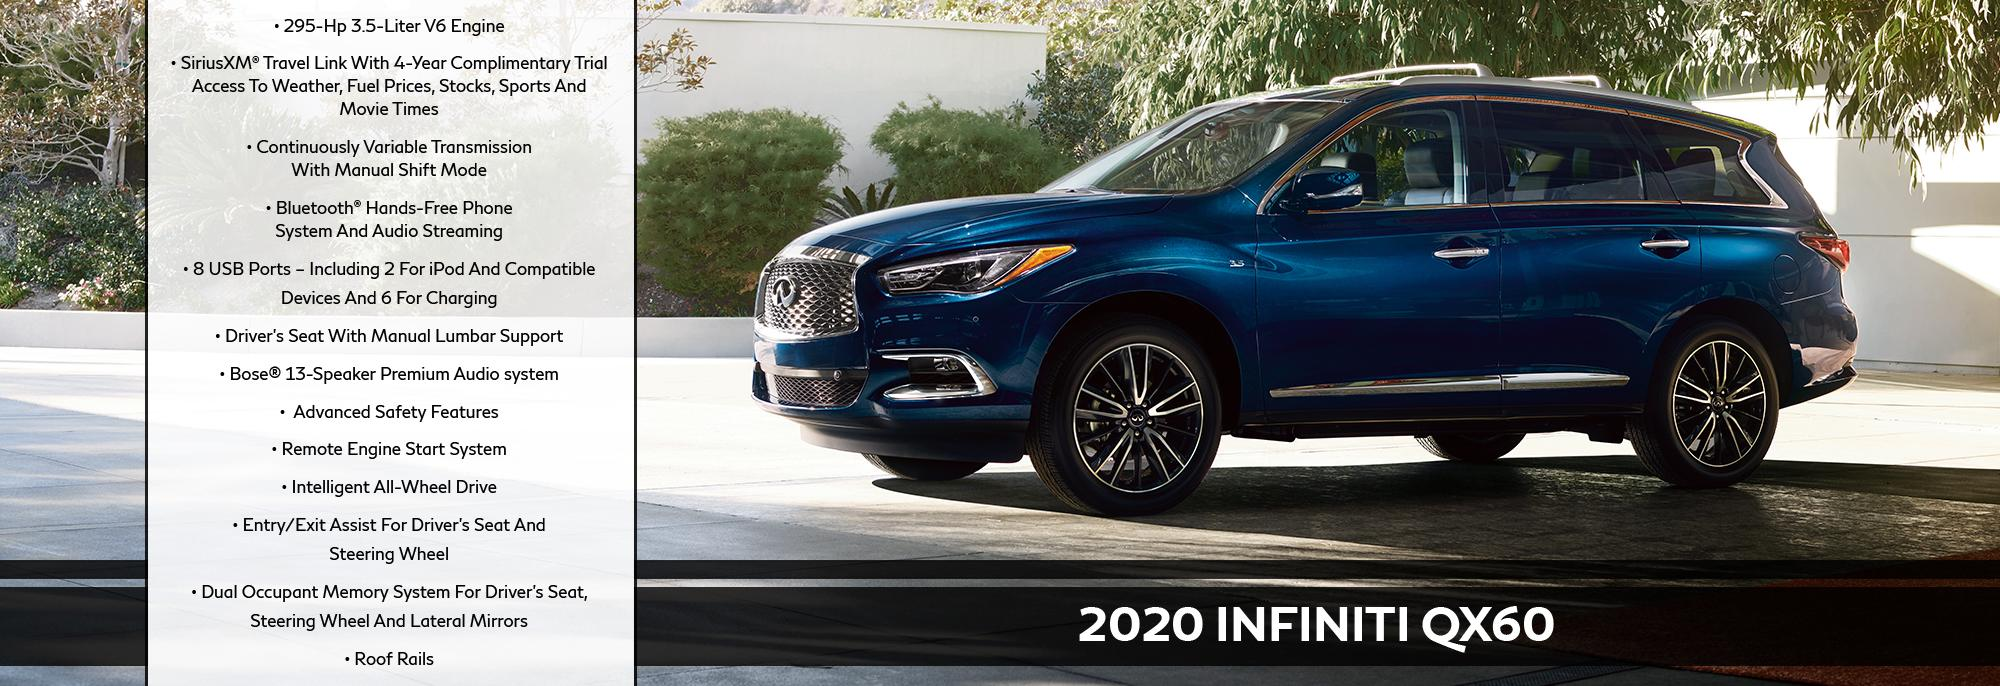 New 2020 INFINITI QX60 Offer